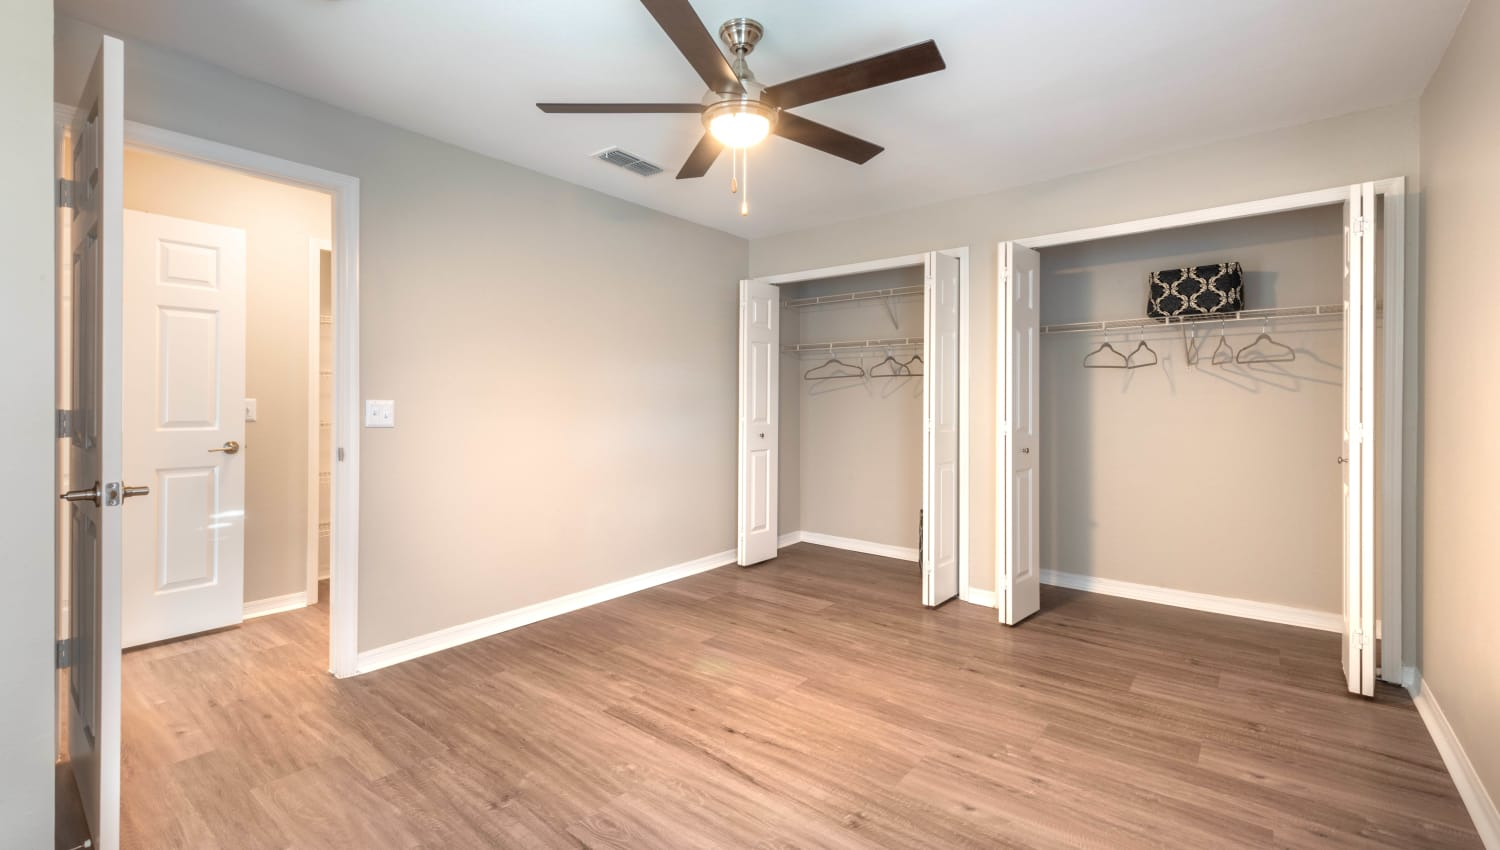 Master bedroom with ample closet space and a ceiling fan in a model home at Cape House in Jacksonville, Florida